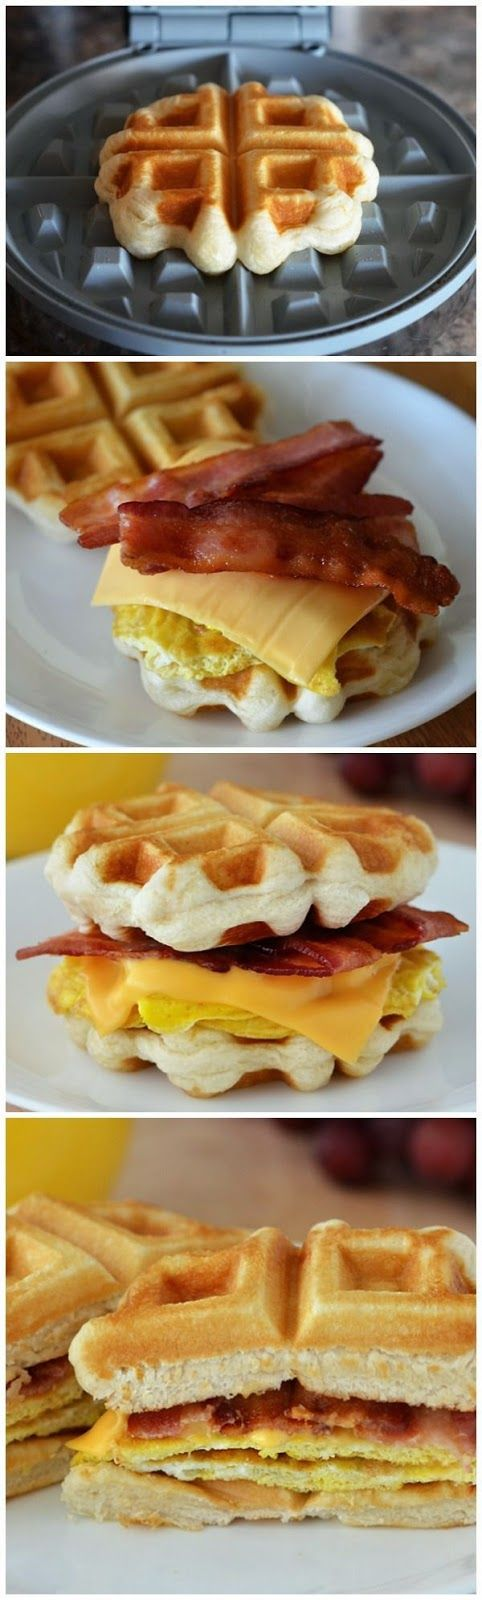 Grab-and-Go Waffle #Breakfast  #Sandwiches